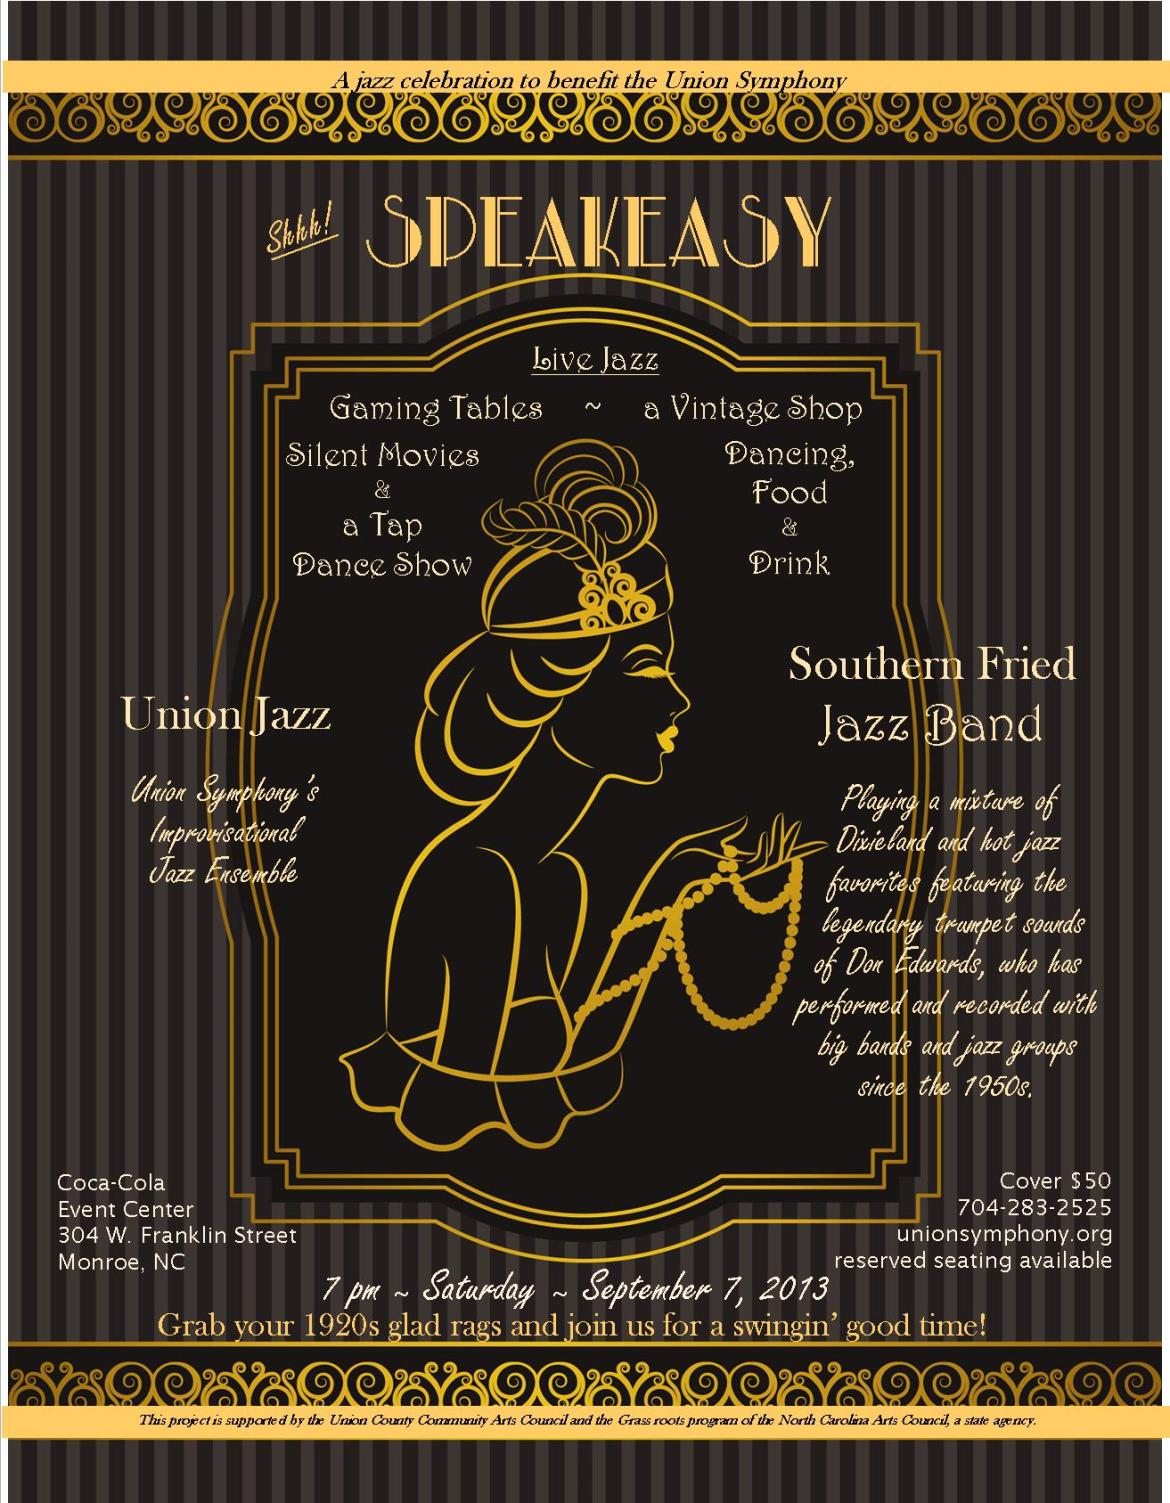 2013 Speakeasy flyer alternate